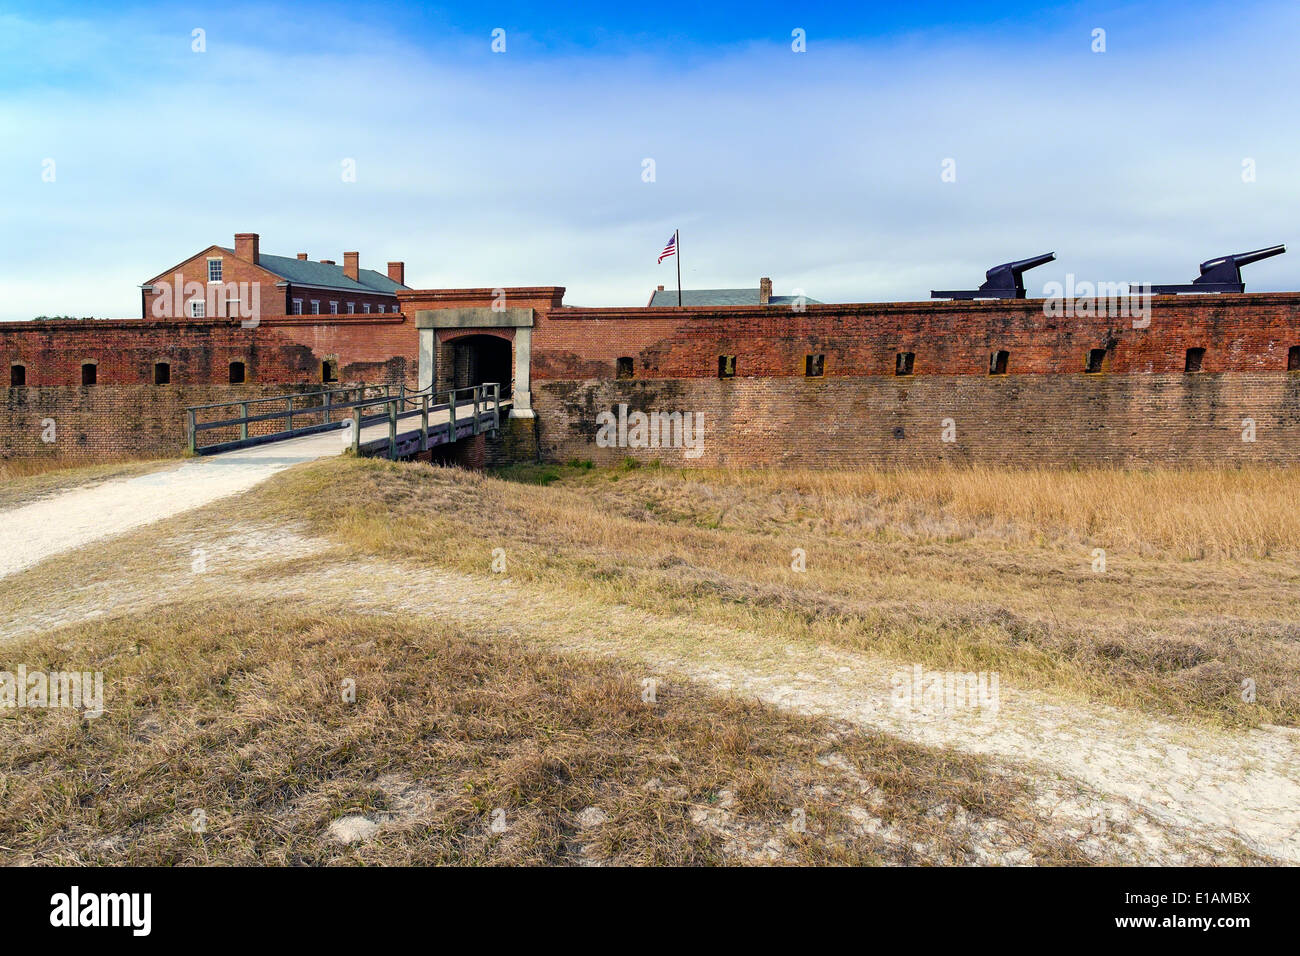 Entrance Gate and Walls of a Brick Fort, Fort Clinch, Nassau County, Florida - Stock Image